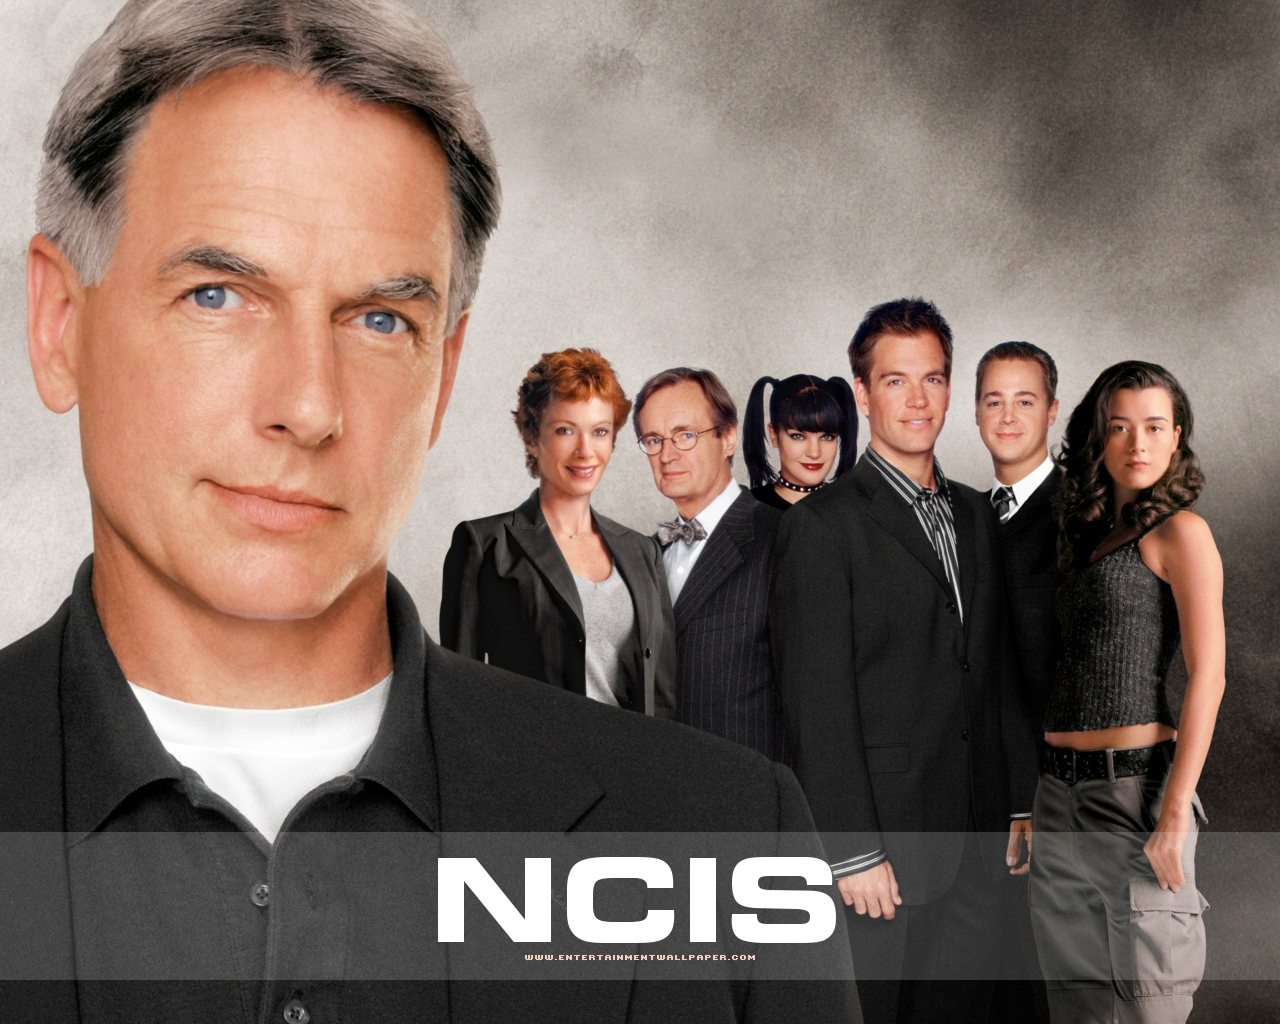 Catch NCIS each Tuesday Night at 8:00 PM ET/PT followed by NCIS: Los Angeles on CBS